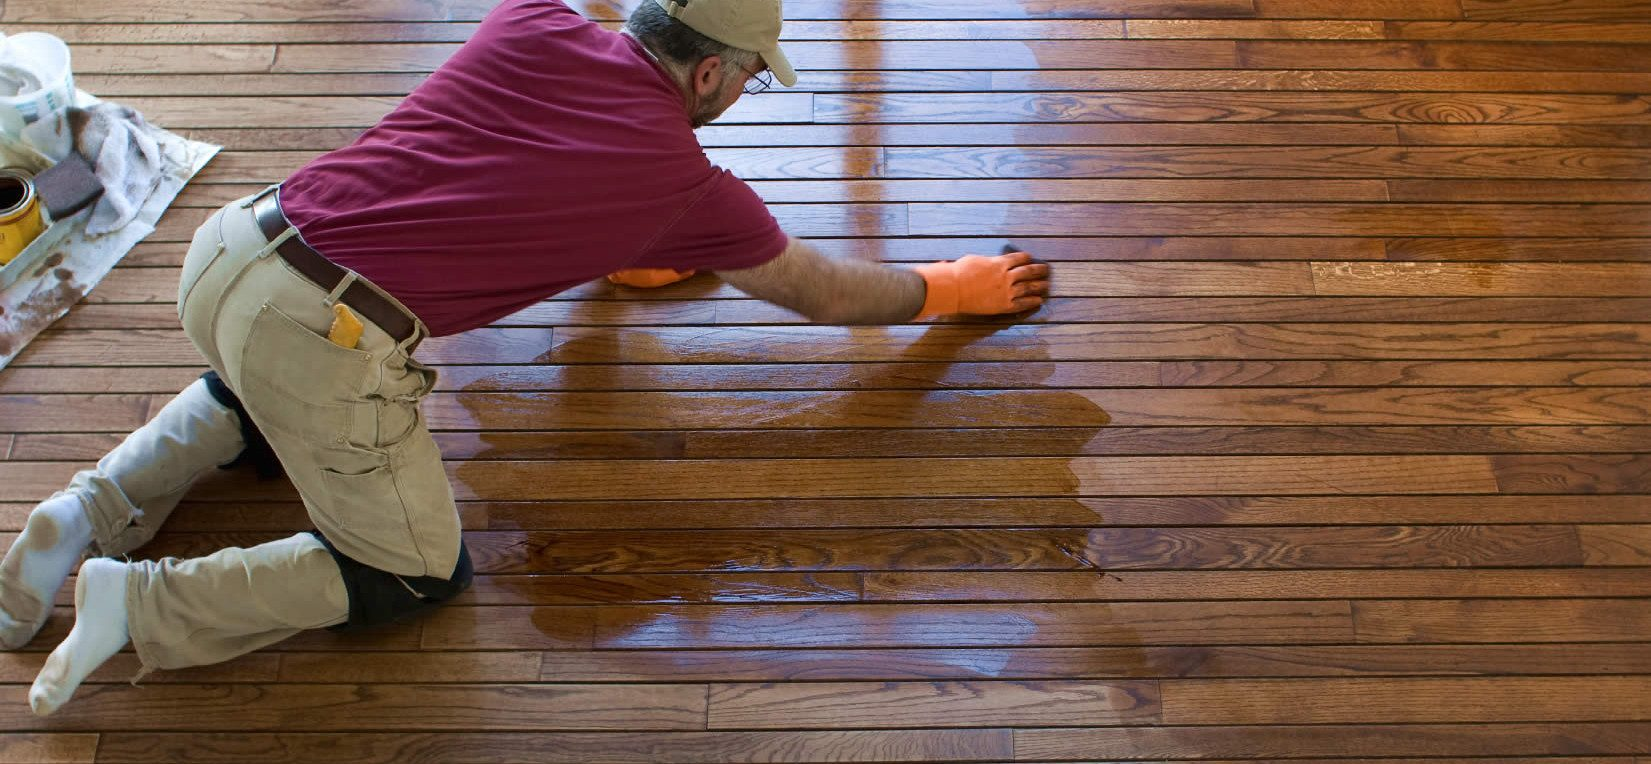 How-To-Restore-Wood-Flooring-In-4-Steps.|How-To-Restore-Wood-Flooring-In-4-Steps.|sanding-the-floor